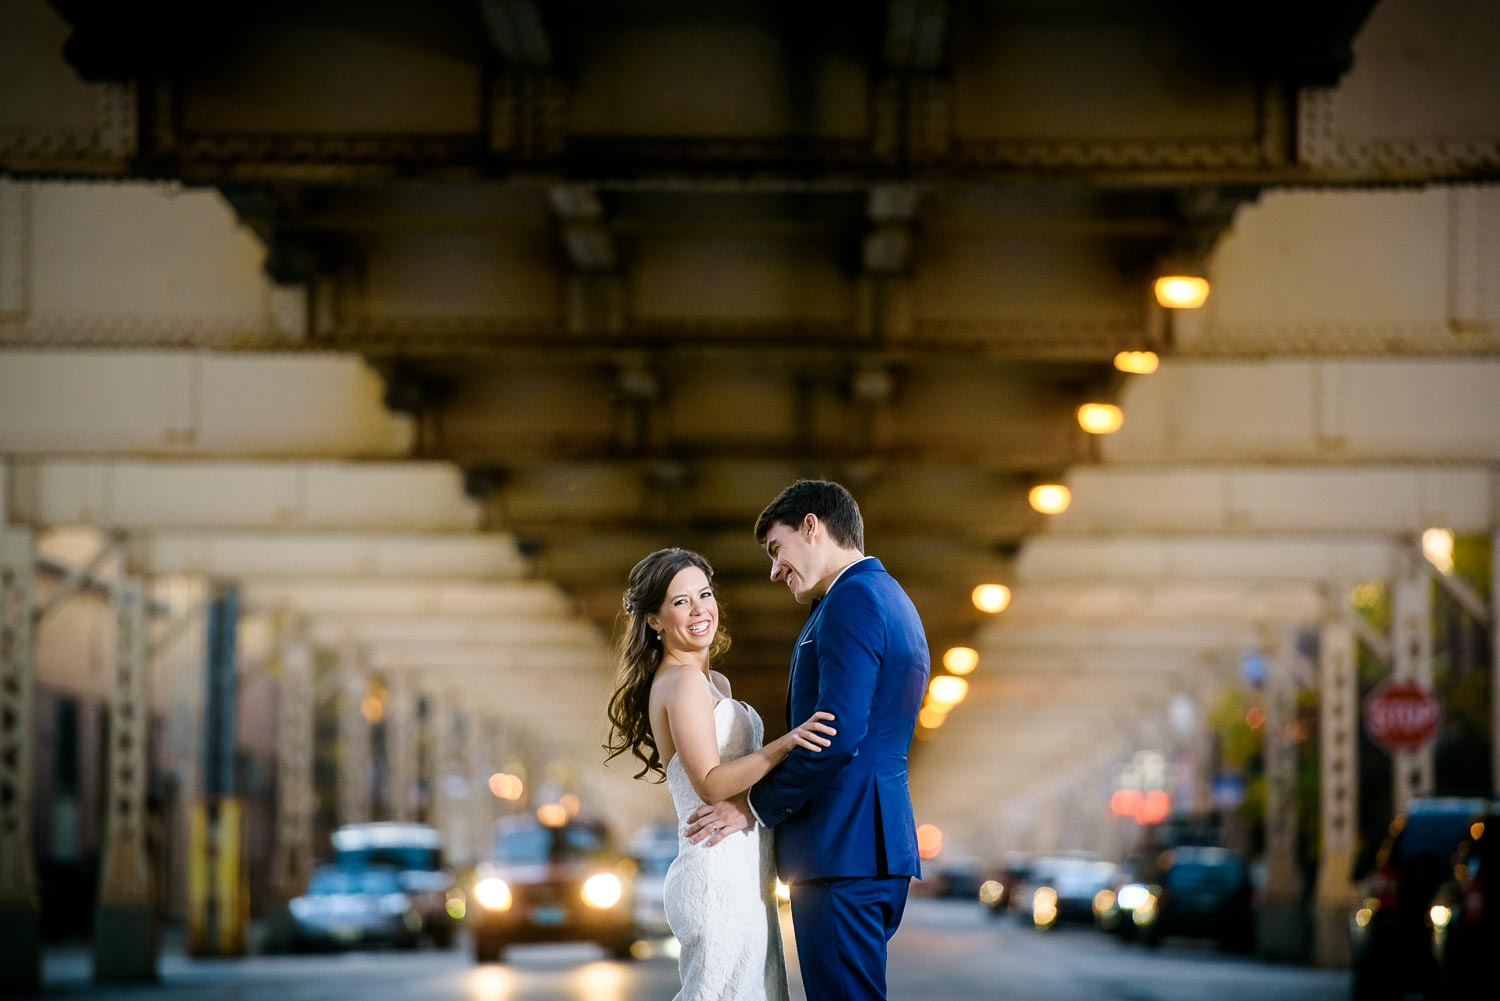 Bride & groom kiss on a bridge over the Chicago River on their wedding day.